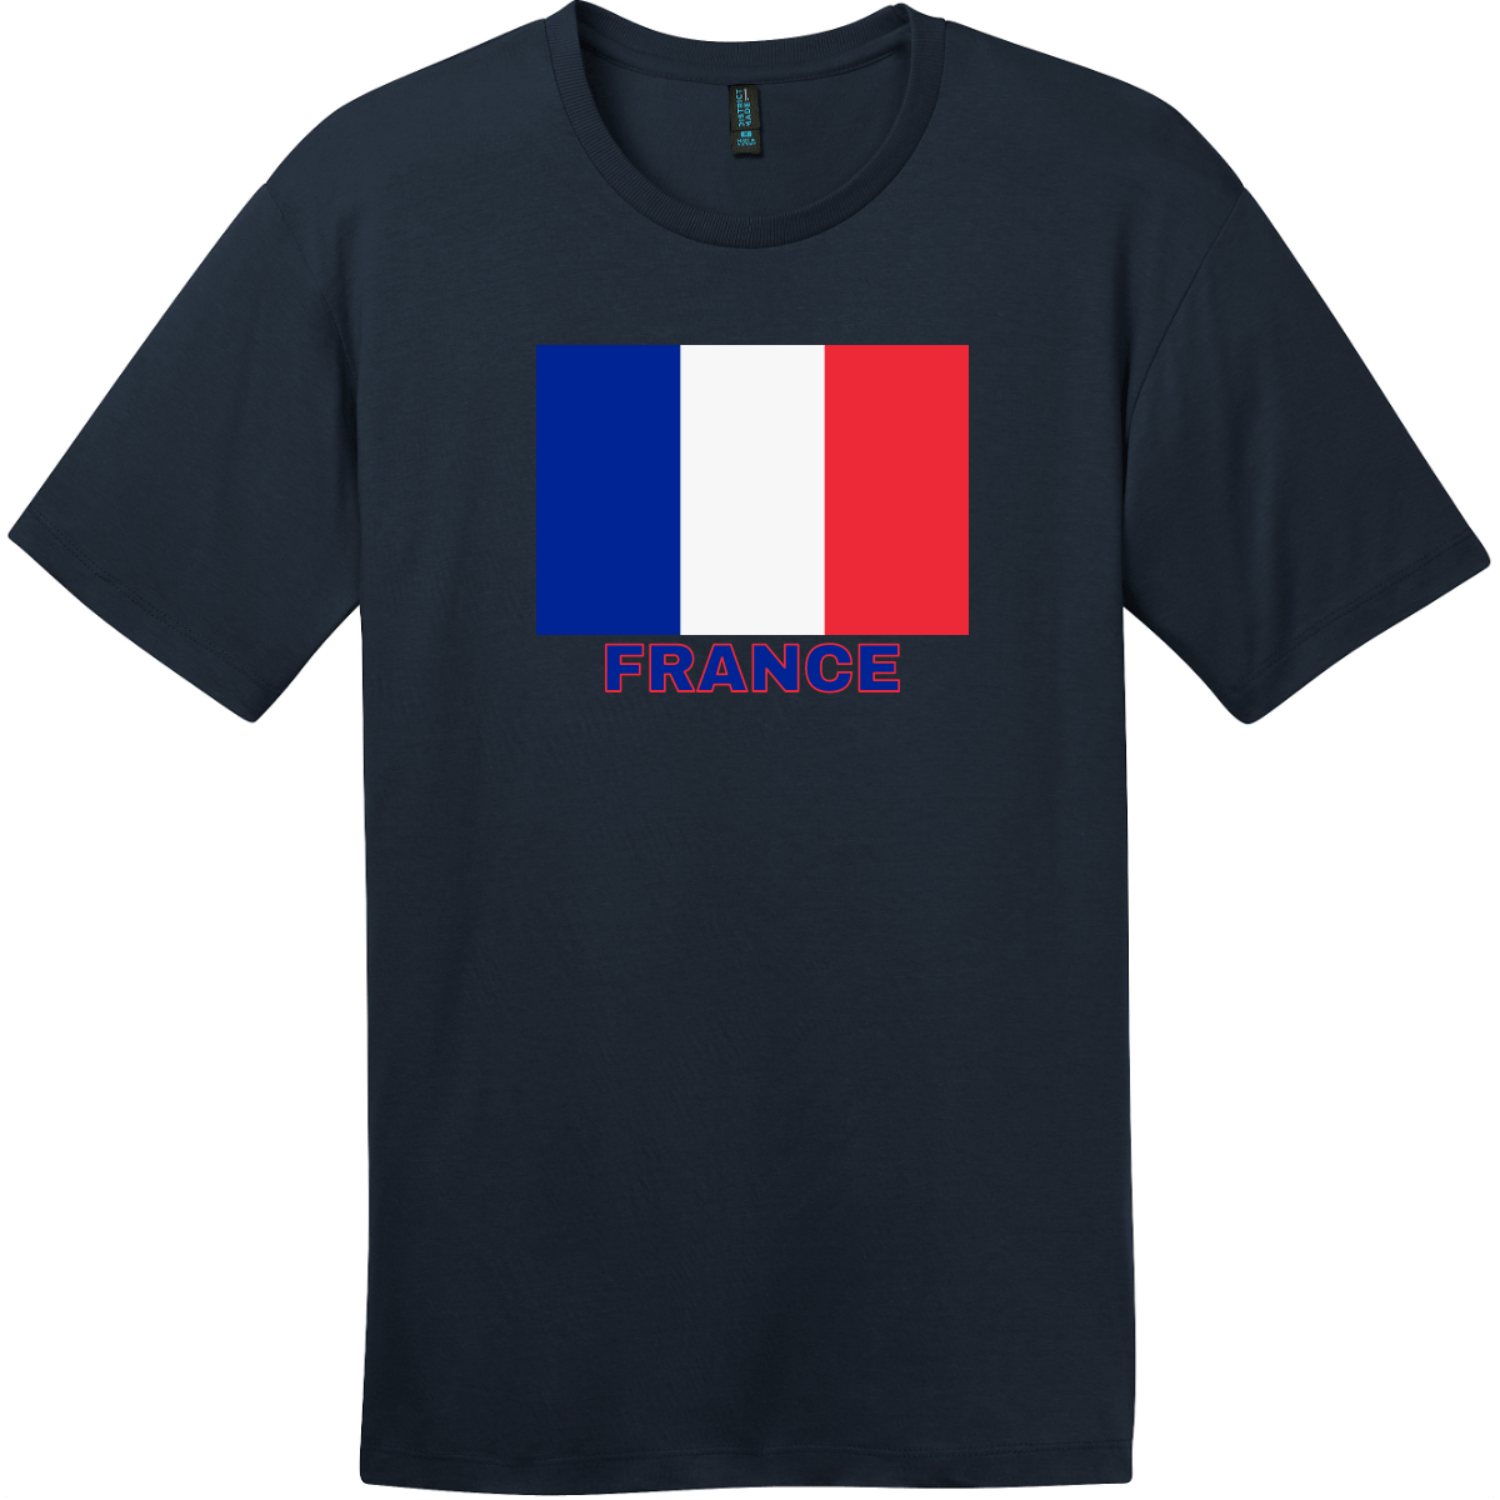 France Flag T-Shirt New Navy District Perfect Weight Tee DT104